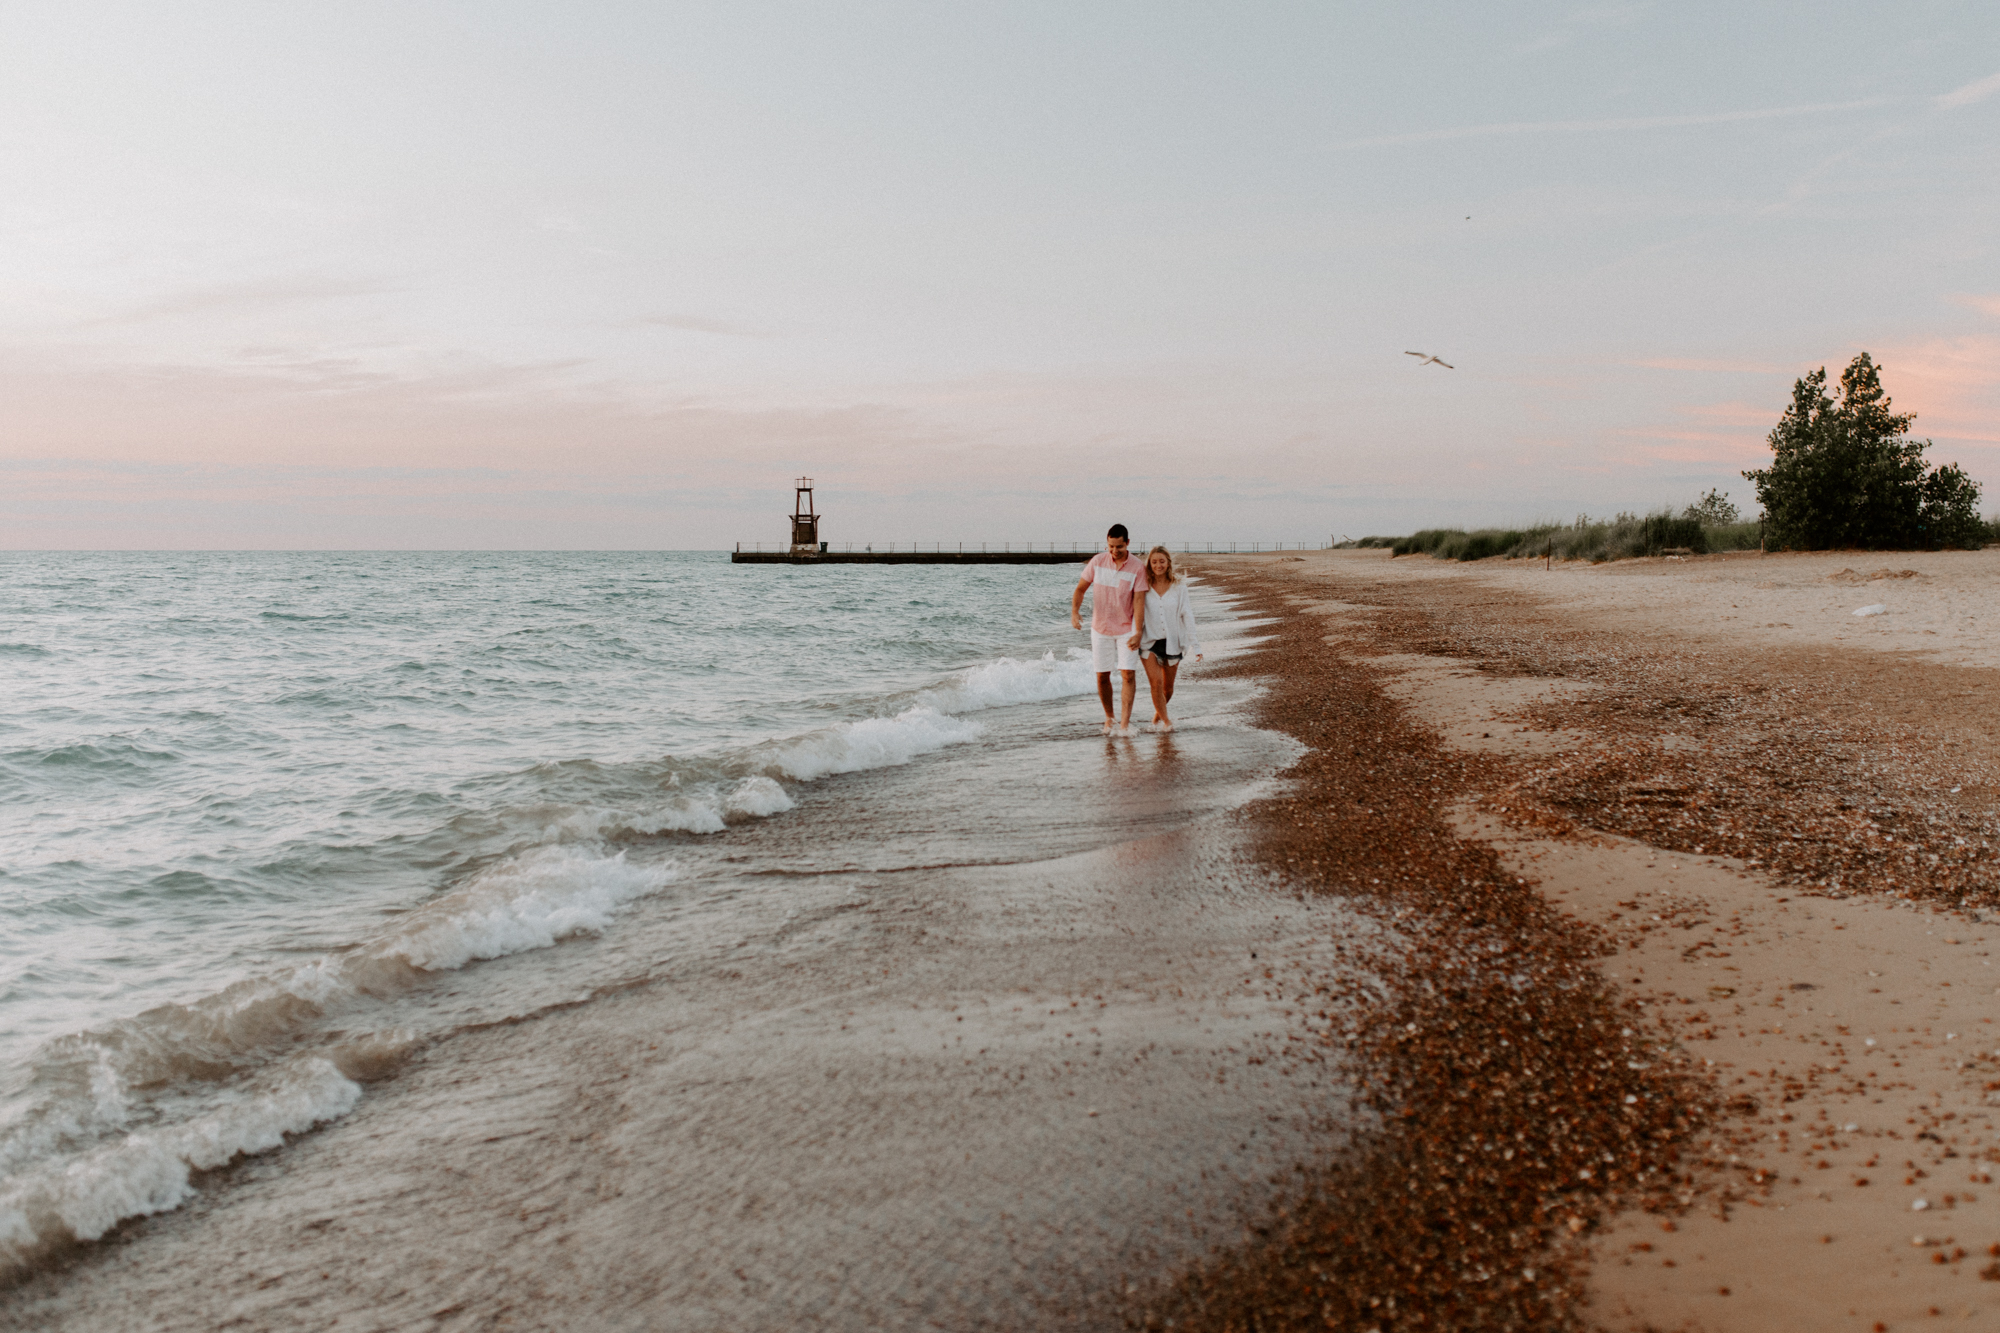 M + J chicago lake michigan beach couples photoshoot engagement wedding elopement photography photographer-5.jpg